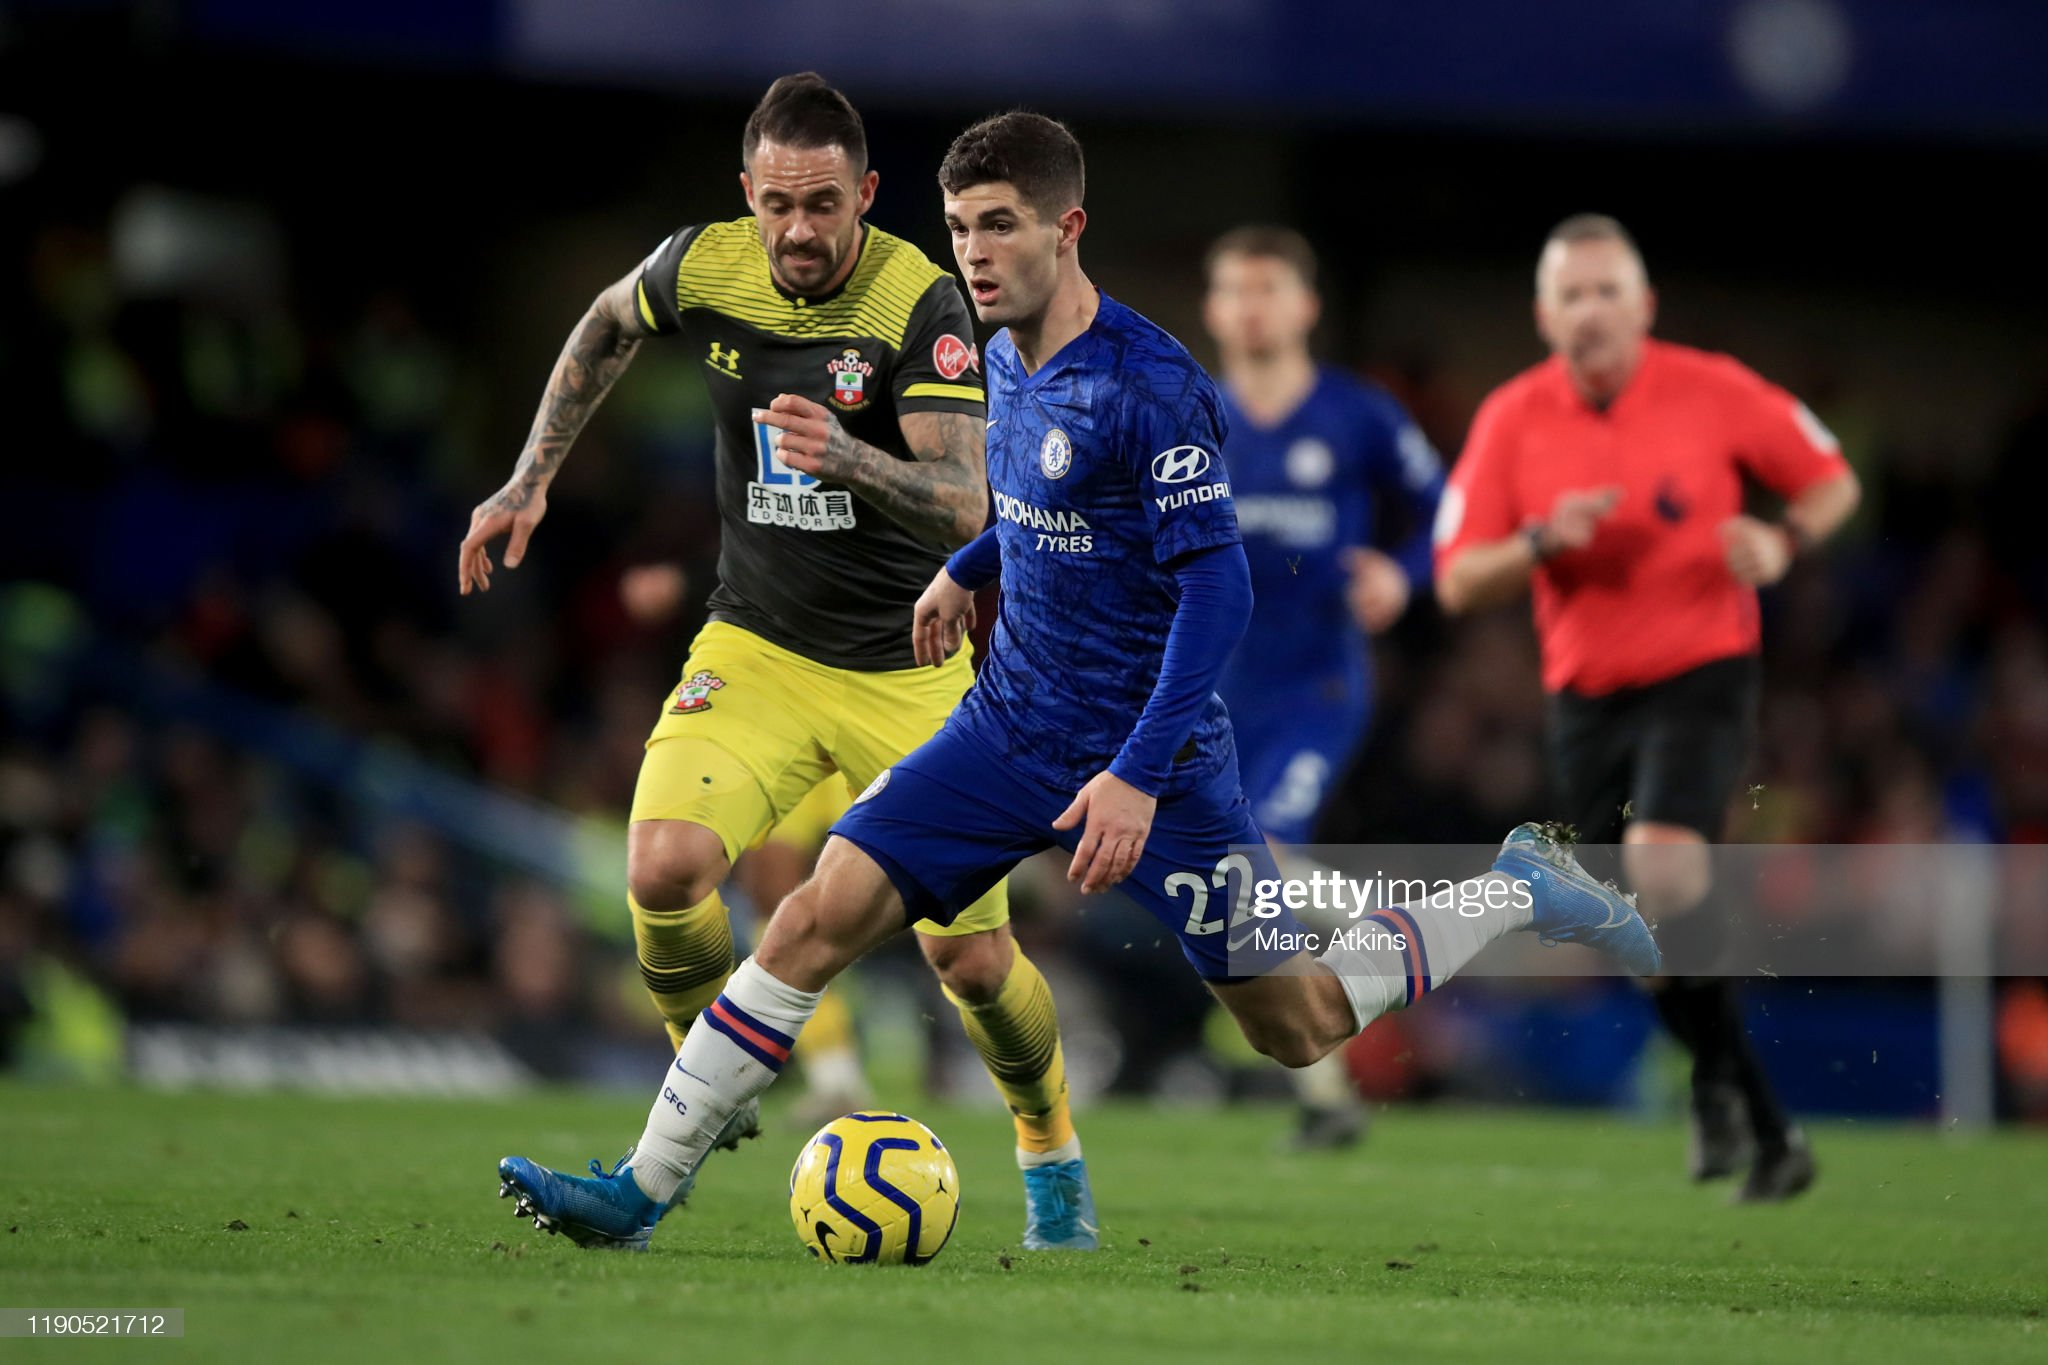 Chelsea vs Southampton Preview, prediction and odds